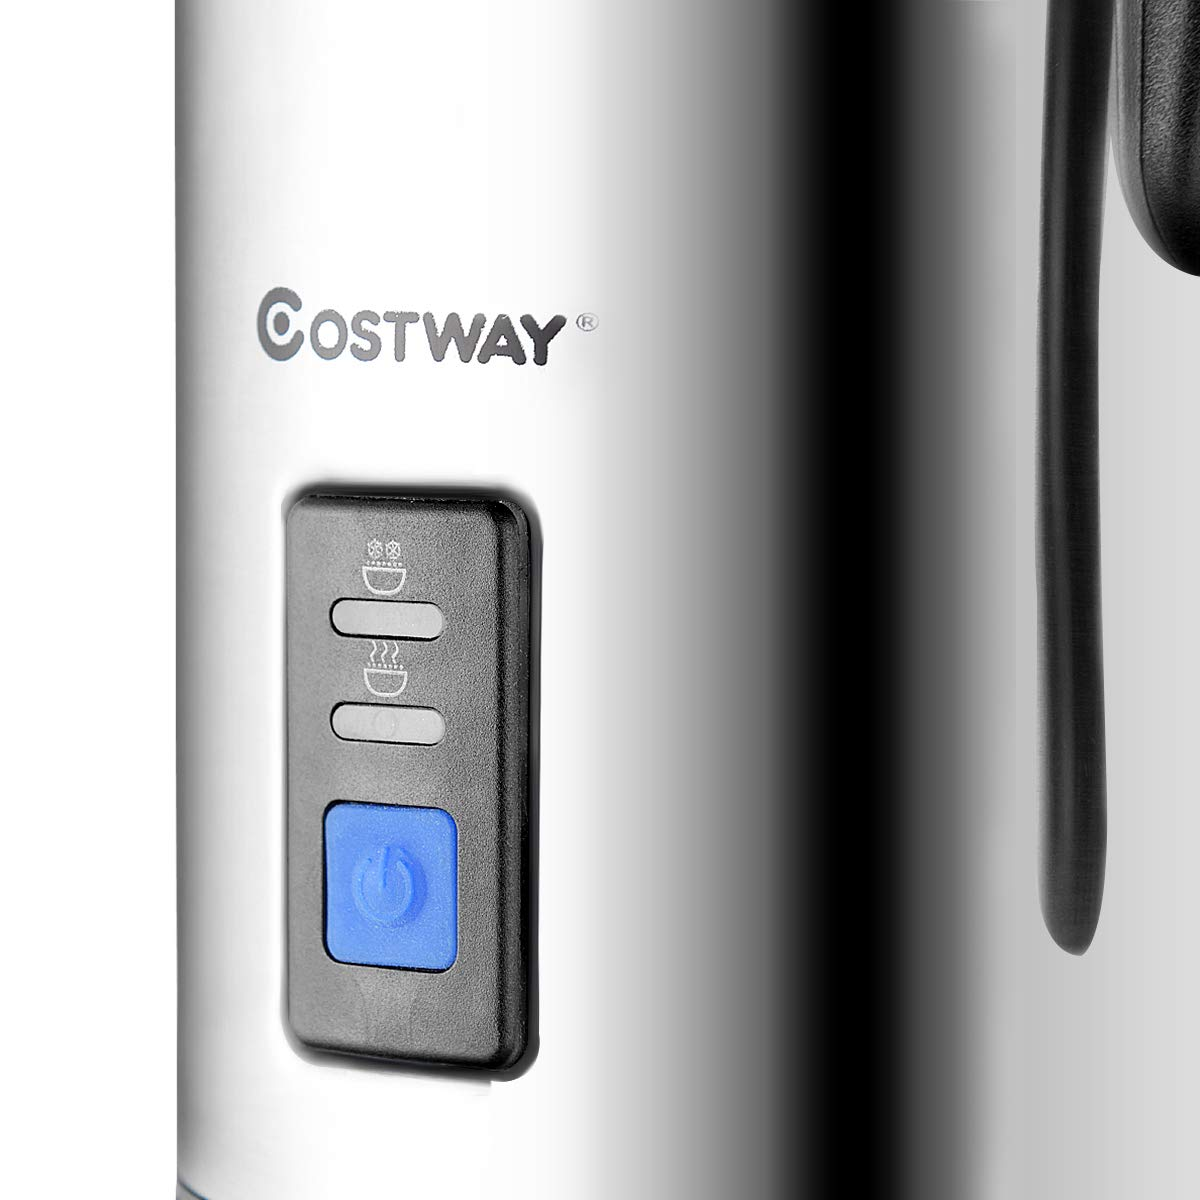 COSTWAY Milk Frother, Electric Automatic Stainless Steel,Non-Stick Interior, Milk Steamer Foamer for Coffee, Latte, Cappuccino with Handheld (Stainless-Update) by COSTWAY (Image #8)